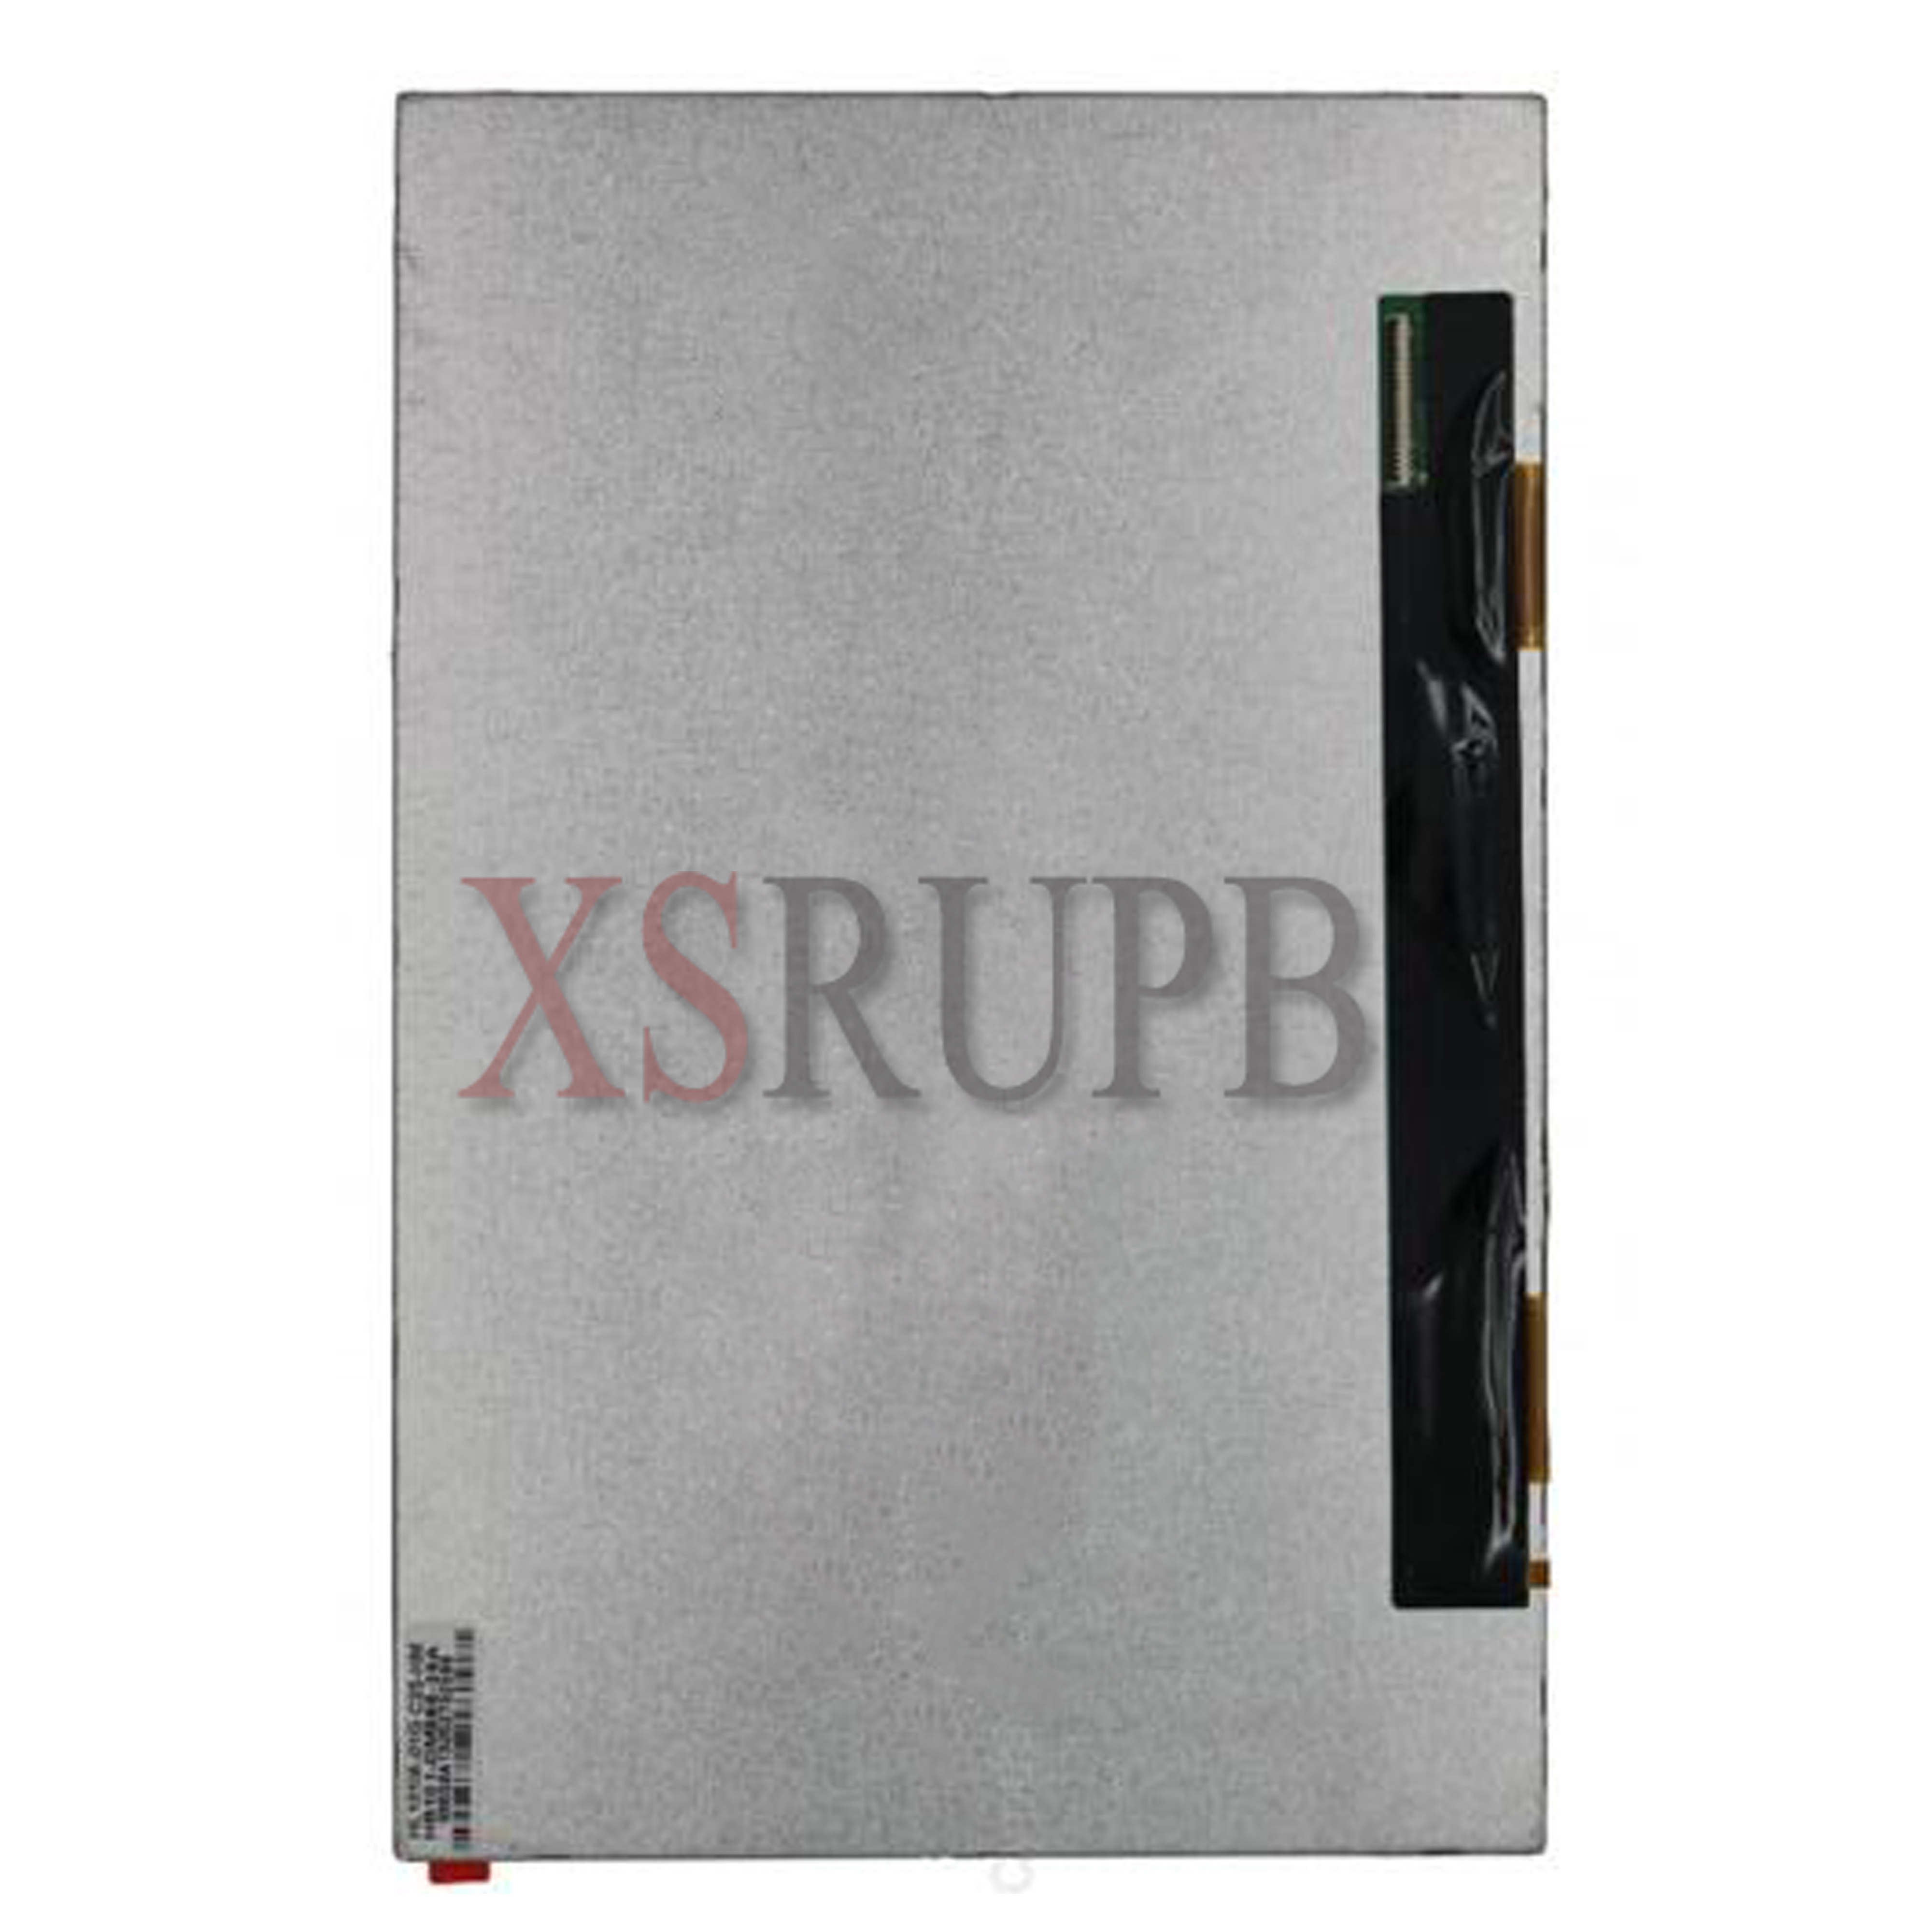 Original and New 10.1inch LCD screen for BQ Edison 3 tablet pc LCD Display free shipping original and new 9inch lcd screen zm90001c zm90001 for tablet pc free shipping